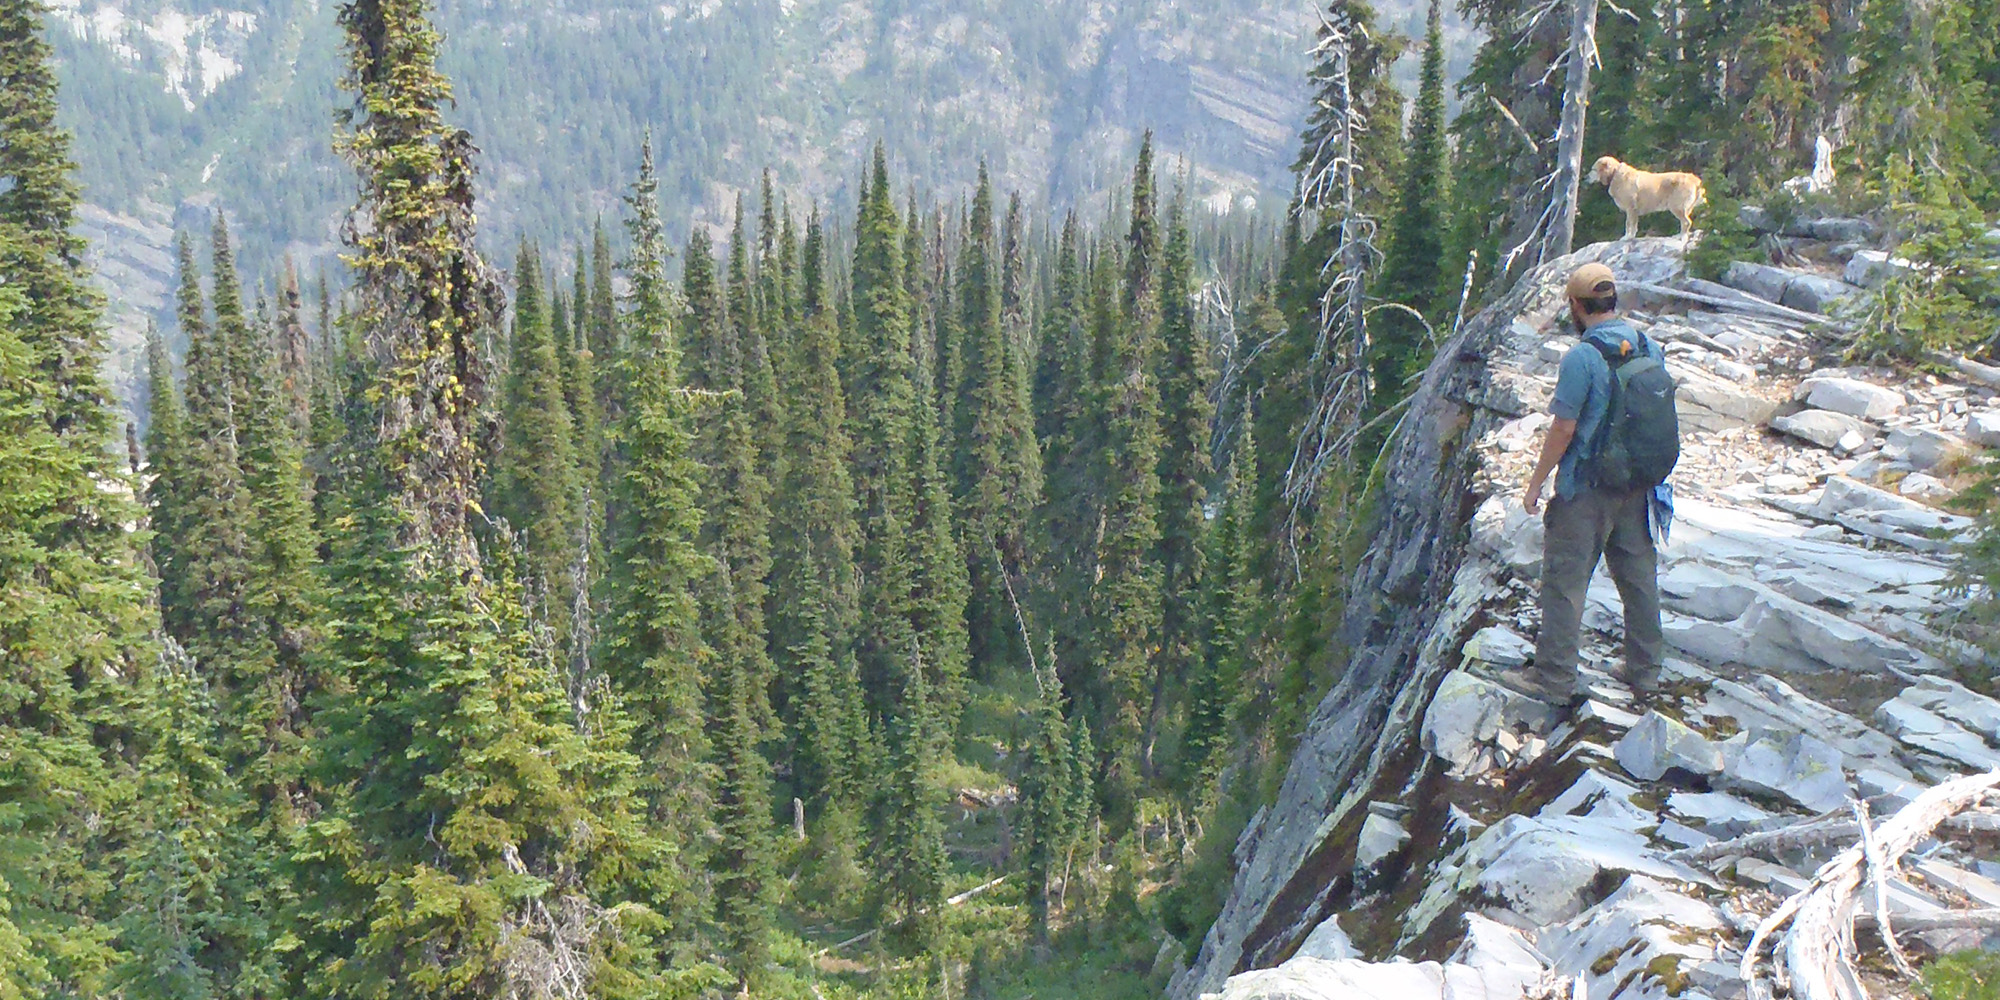 Friends of Scotchman Peaks Wilderness 2020 scholarship competition open for entries